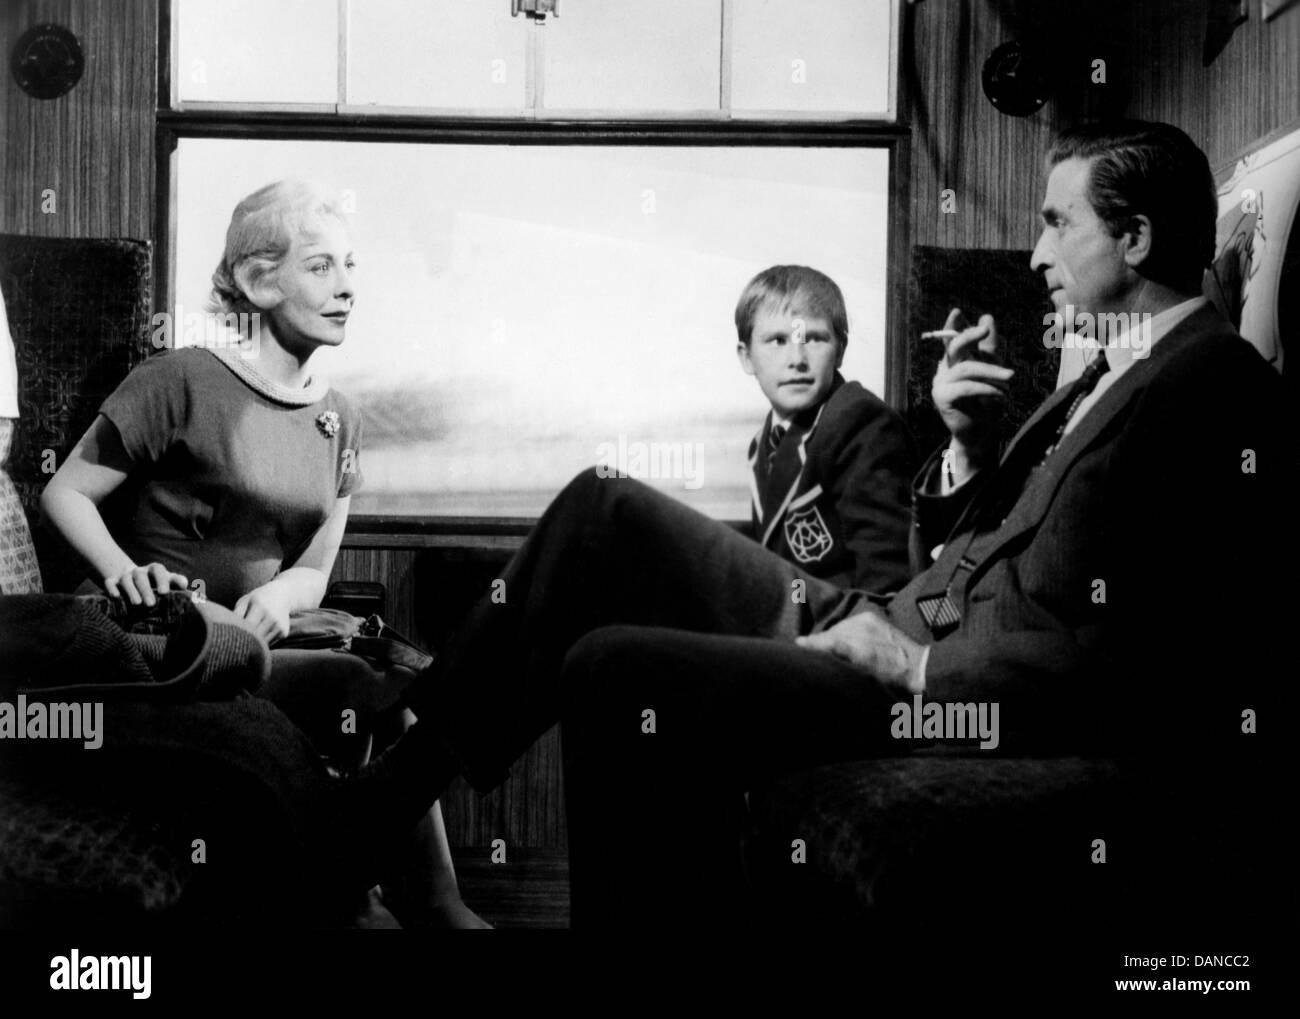 NIGHT TRAIN FOR INVERNESS (1960) JANE HYLTON NORMAN WOOLAND DENNIS WATERMAN ERNEST MORRIS (DIR) NTFI 003 MOVIESTORE Stock Photo